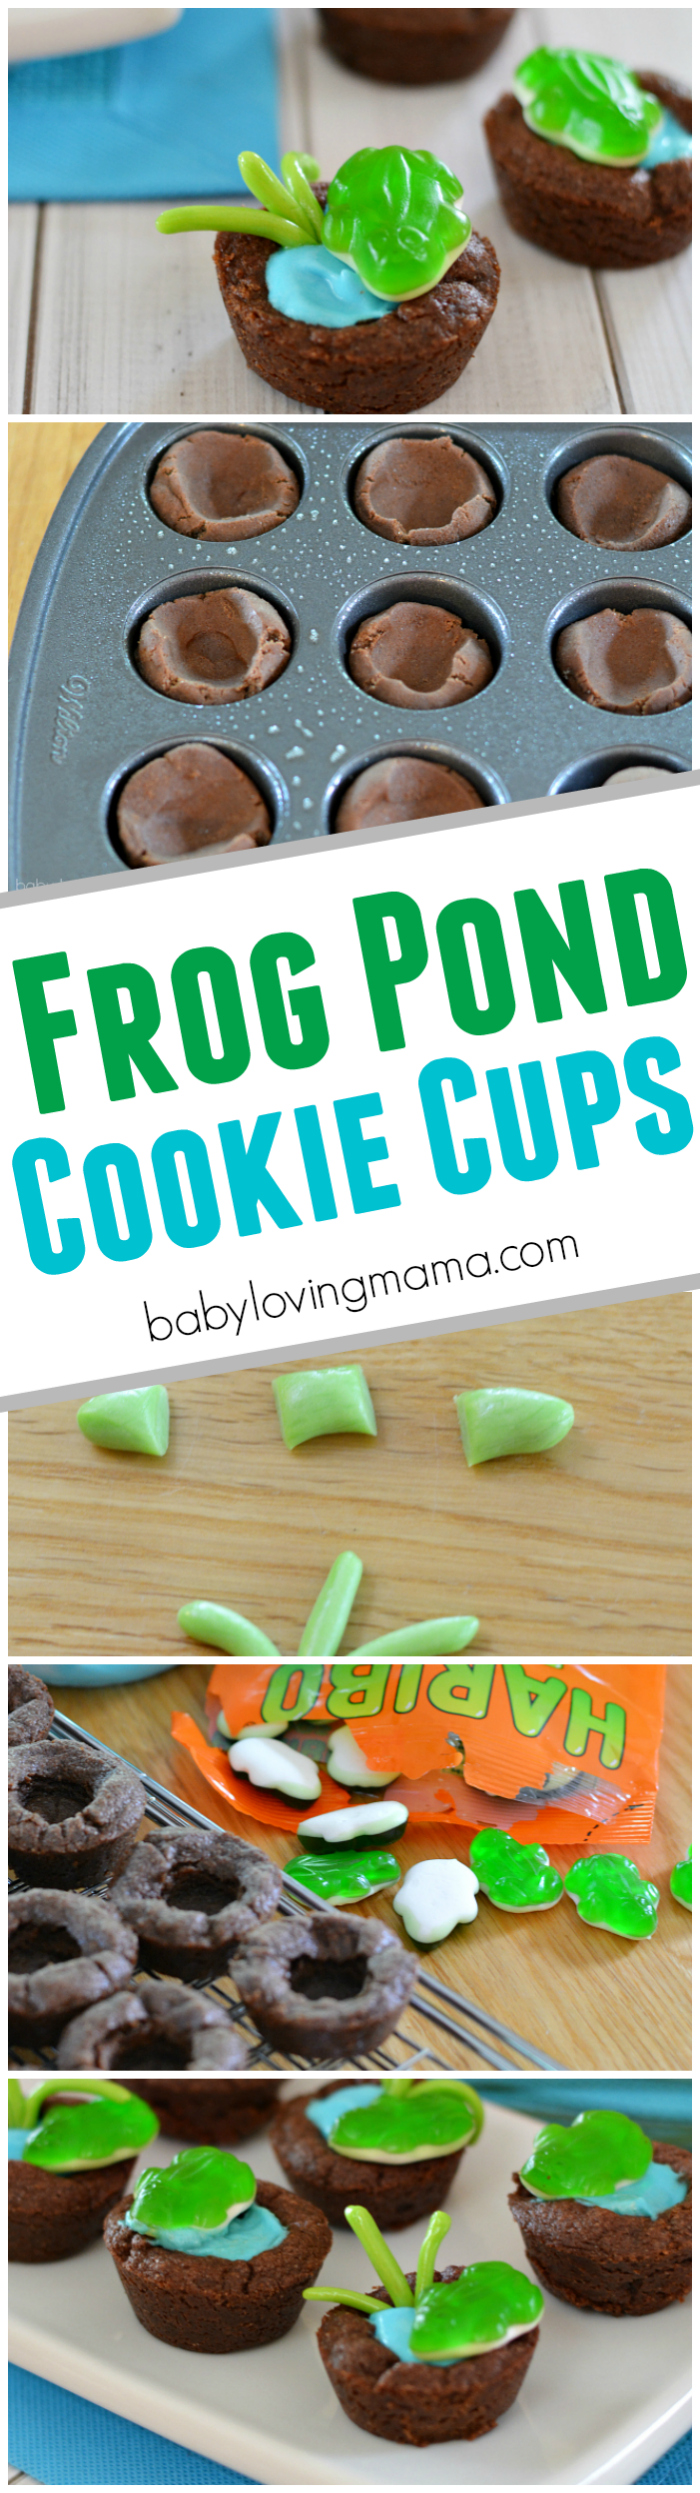 Frog Pond Chocolate Cookie Cups